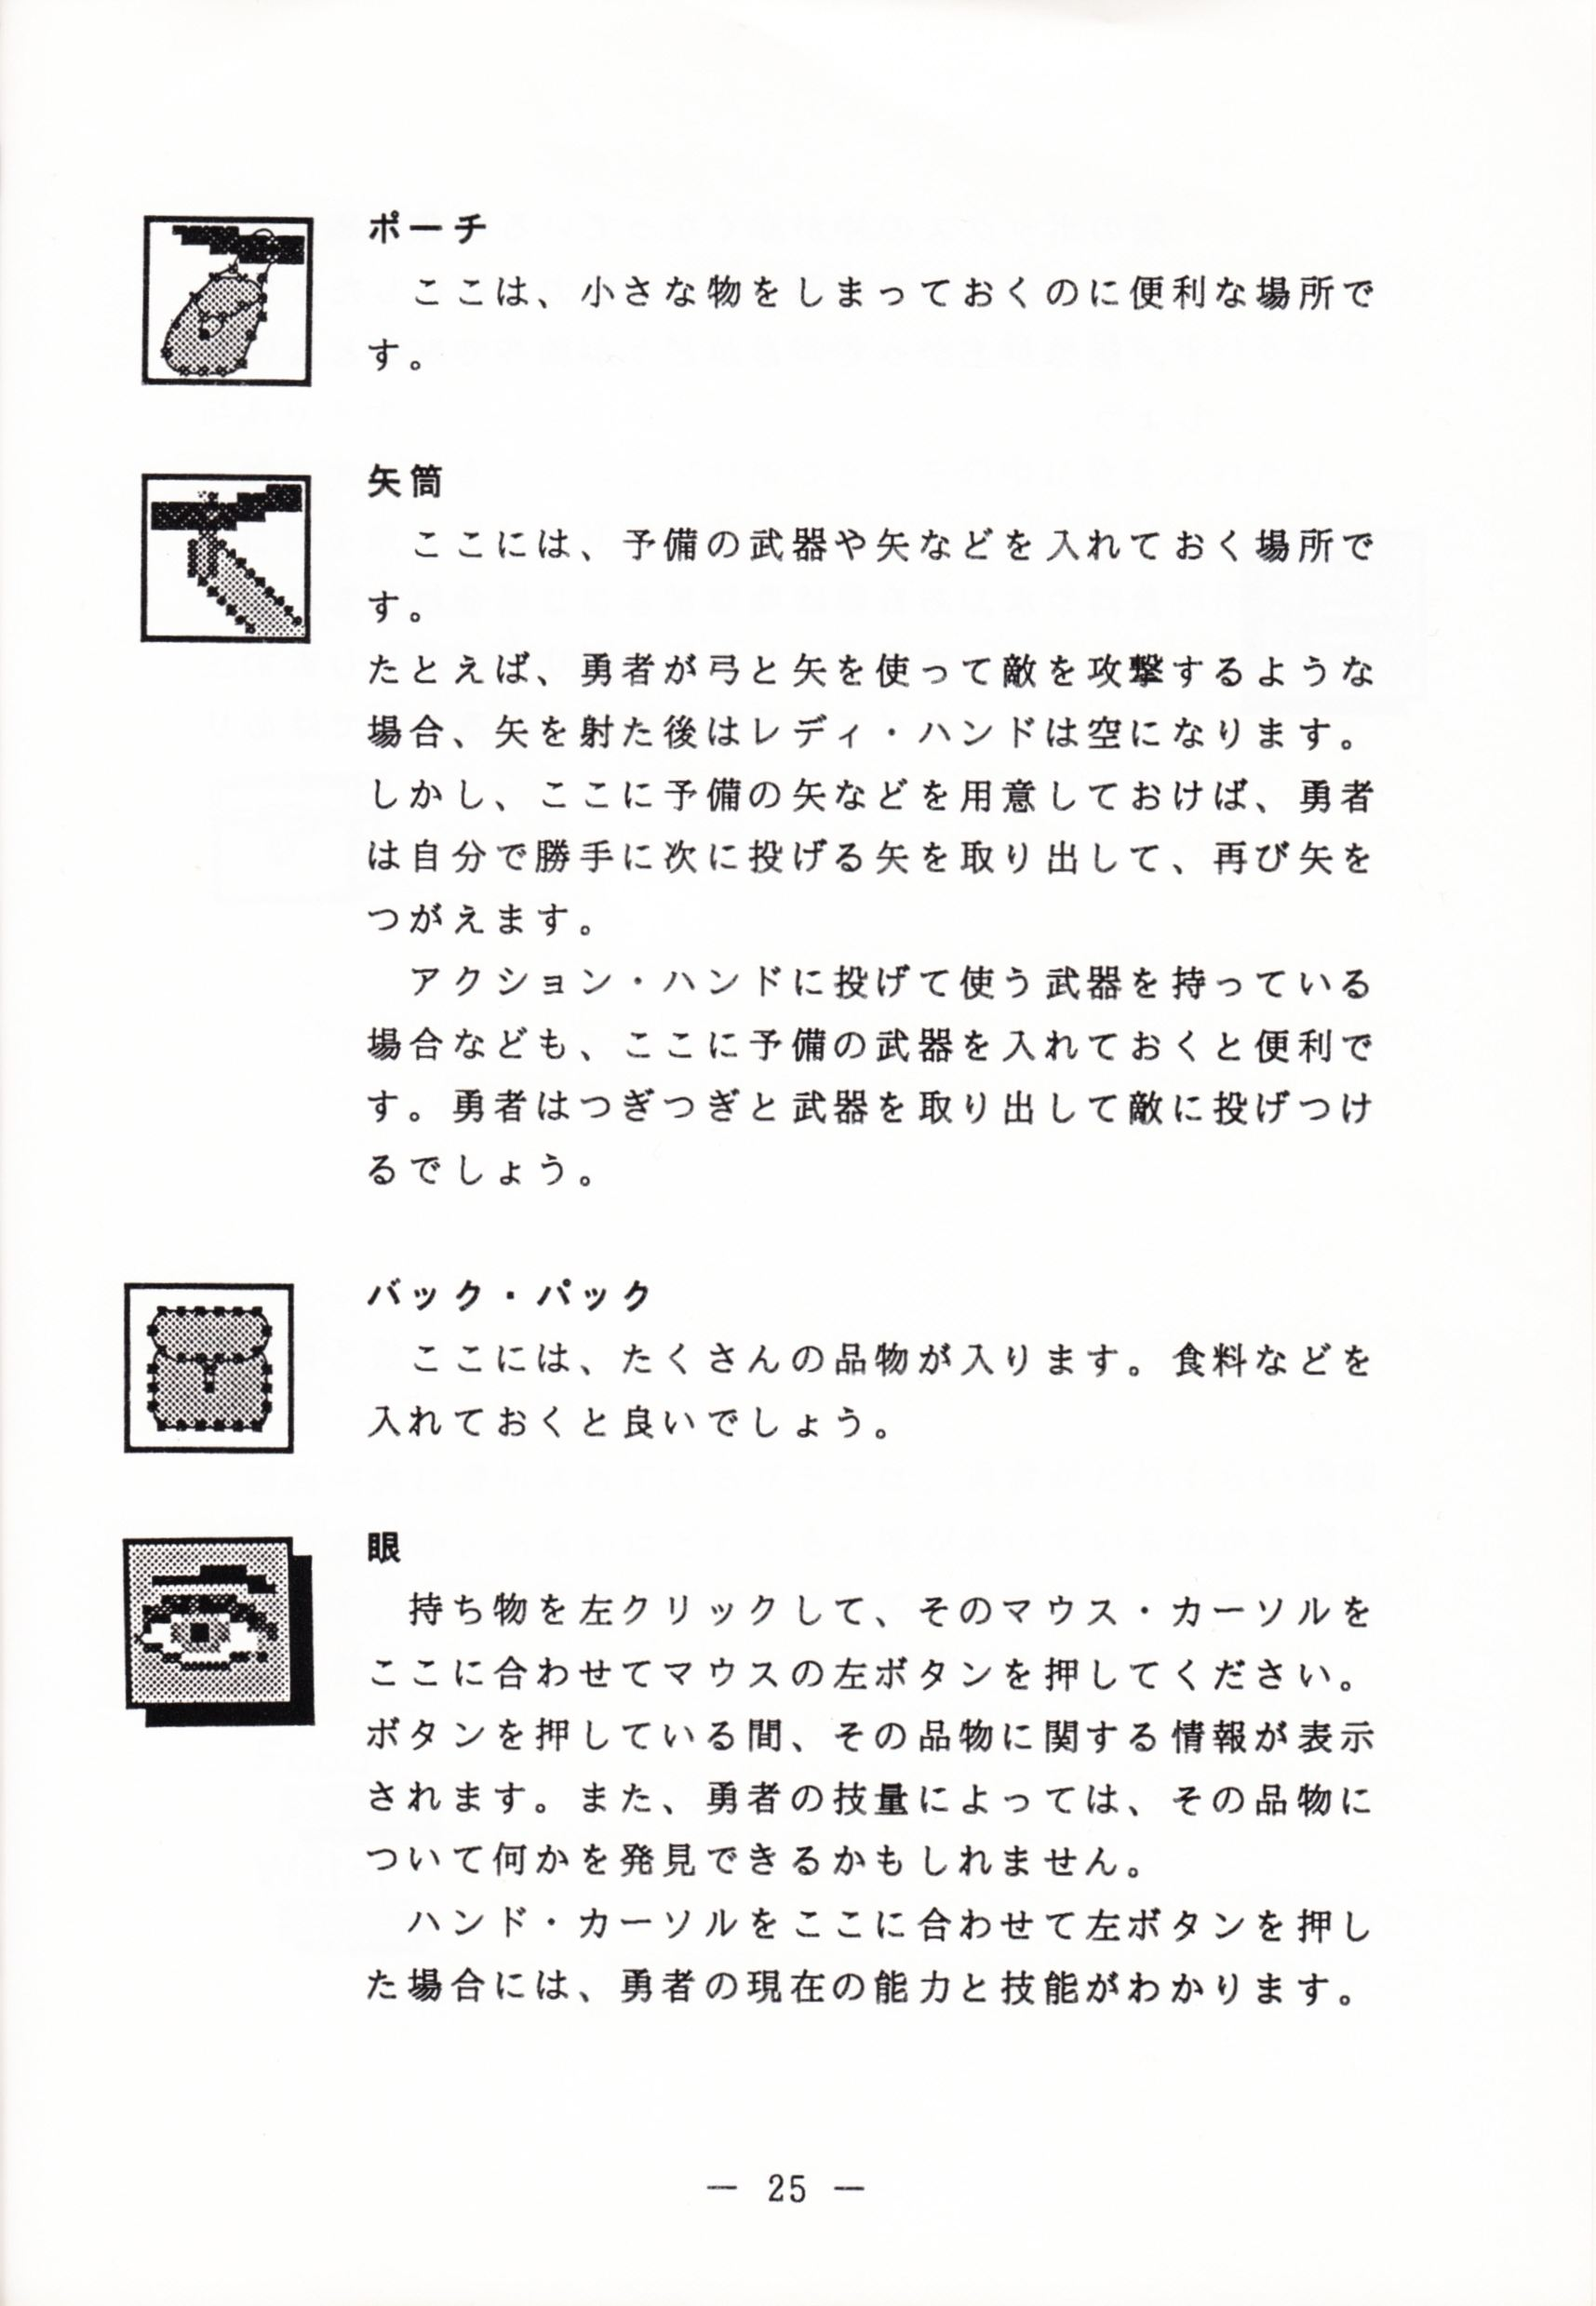 Game - Dungeon Master - JP - FM Towns - Operations Guide - Page 027 - Scan